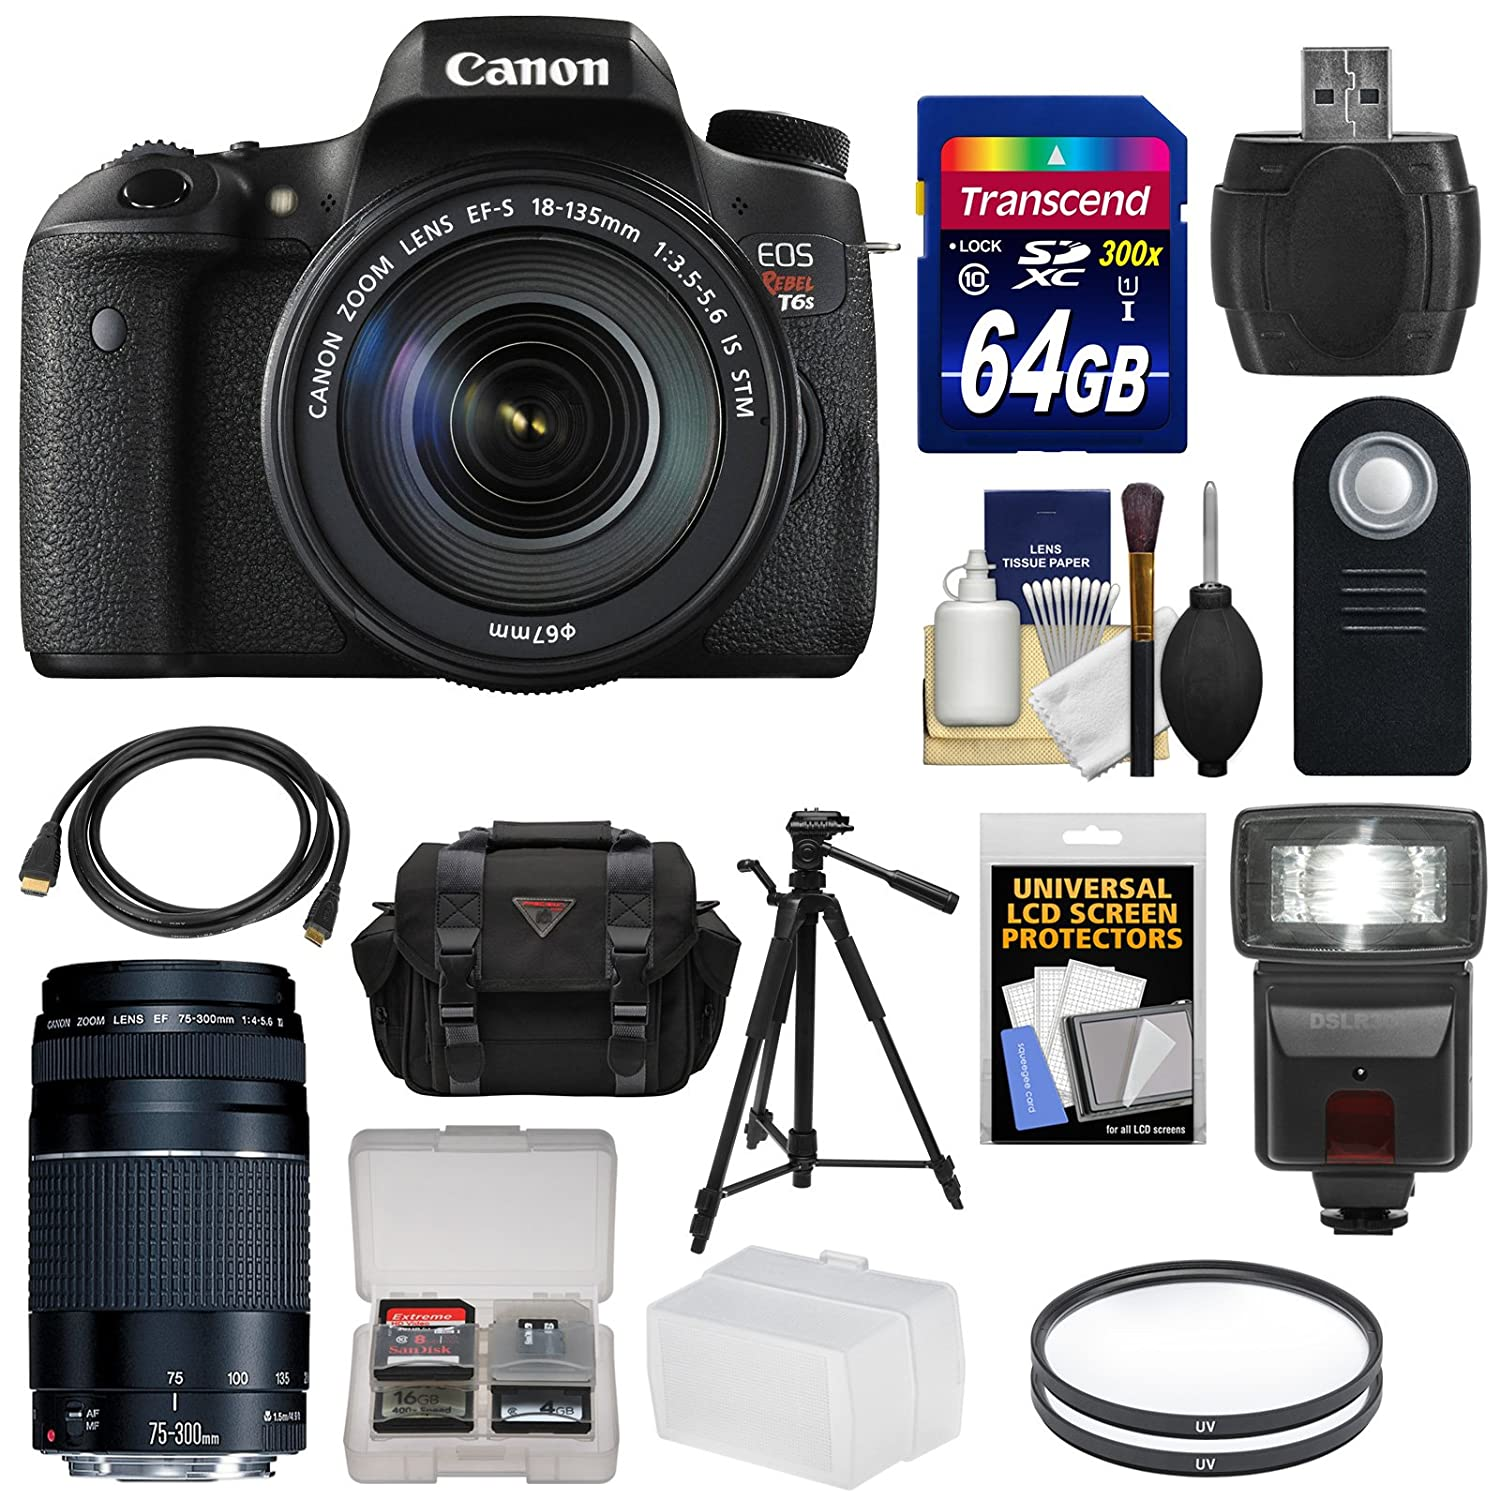 Canon EOS Rebel T6s Wi-Fi Digital SLR Camera & EF-S 18-135mm IS STM & 75-300mm III Lens with 64GB Card + Case + Filters + Tripod + Flash + Kit